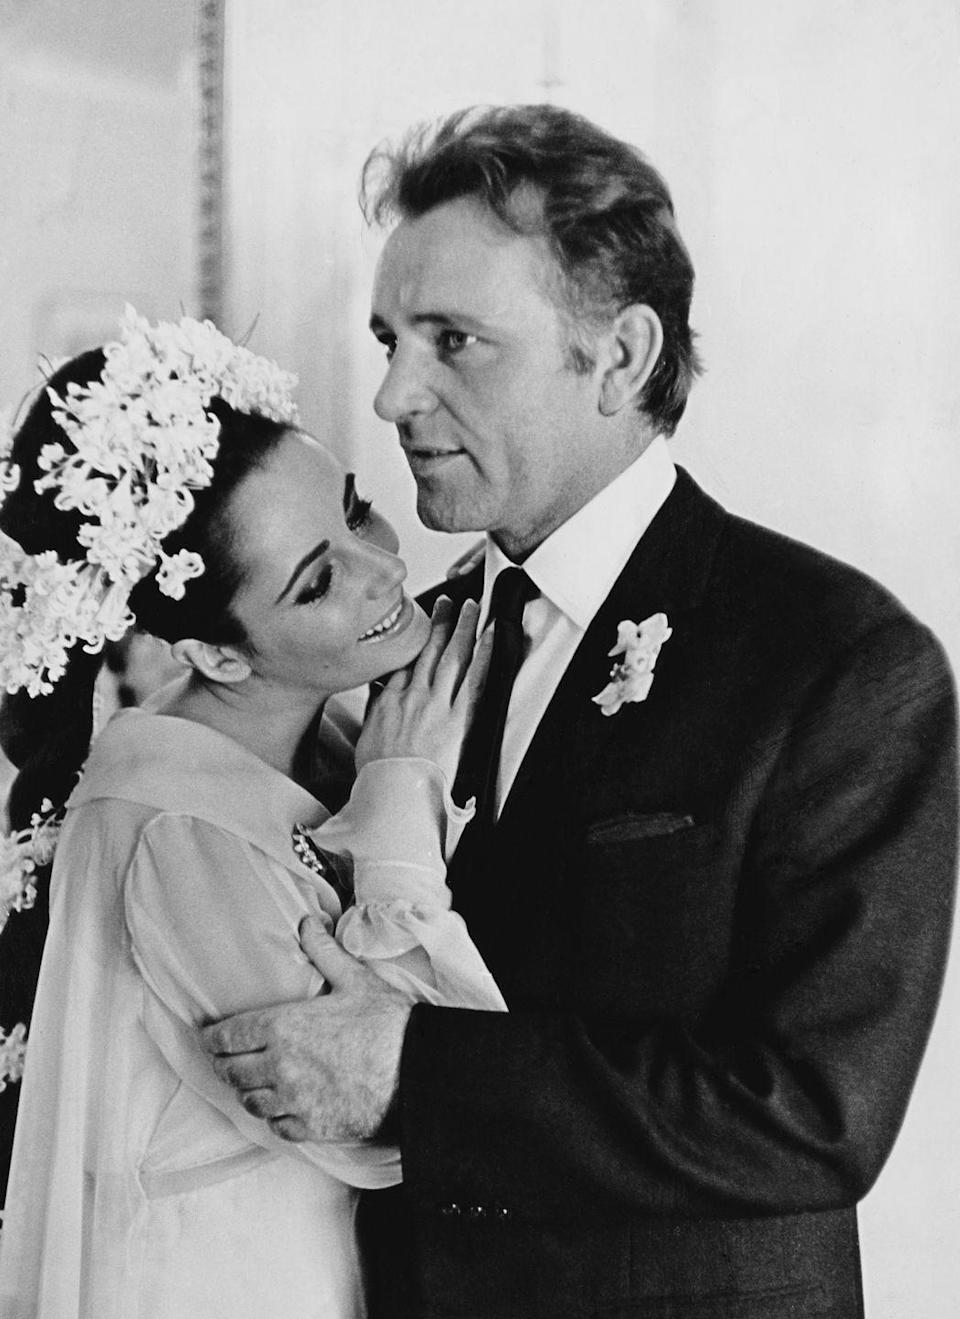 """<p>Richard Burton and Elizabeth Taylor were both married when they met on the set of Cleopatra. The actors left their spouses for one another, got married in 1964, and after 10 years divorced in 1974. Don't worry: The following year, they reunited and <a href=""""https://home.bt.com/news/on-this-day/october-10-1975-liz-taylor-and-richard-burton-remarry-11364009596242"""" rel=""""nofollow noopener"""" target=""""_blank"""" data-ylk=""""slk:eloped in Botswana"""" class=""""link rapid-noclick-resp"""">eloped in Botswana</a>, but divorced *again* in 1976. </p>"""